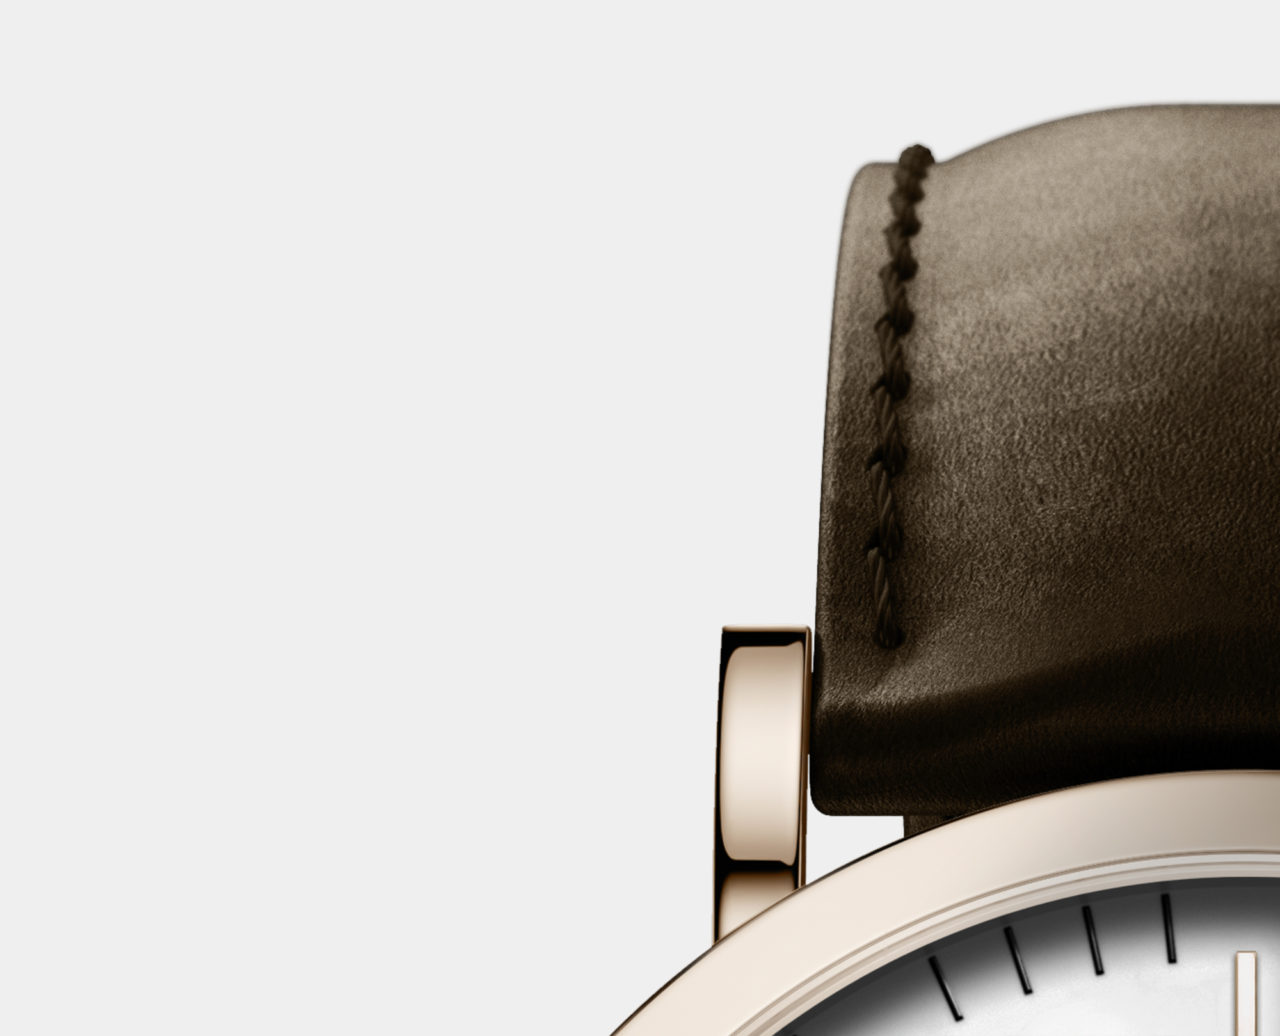 rose gold leather watch with brown leather strap